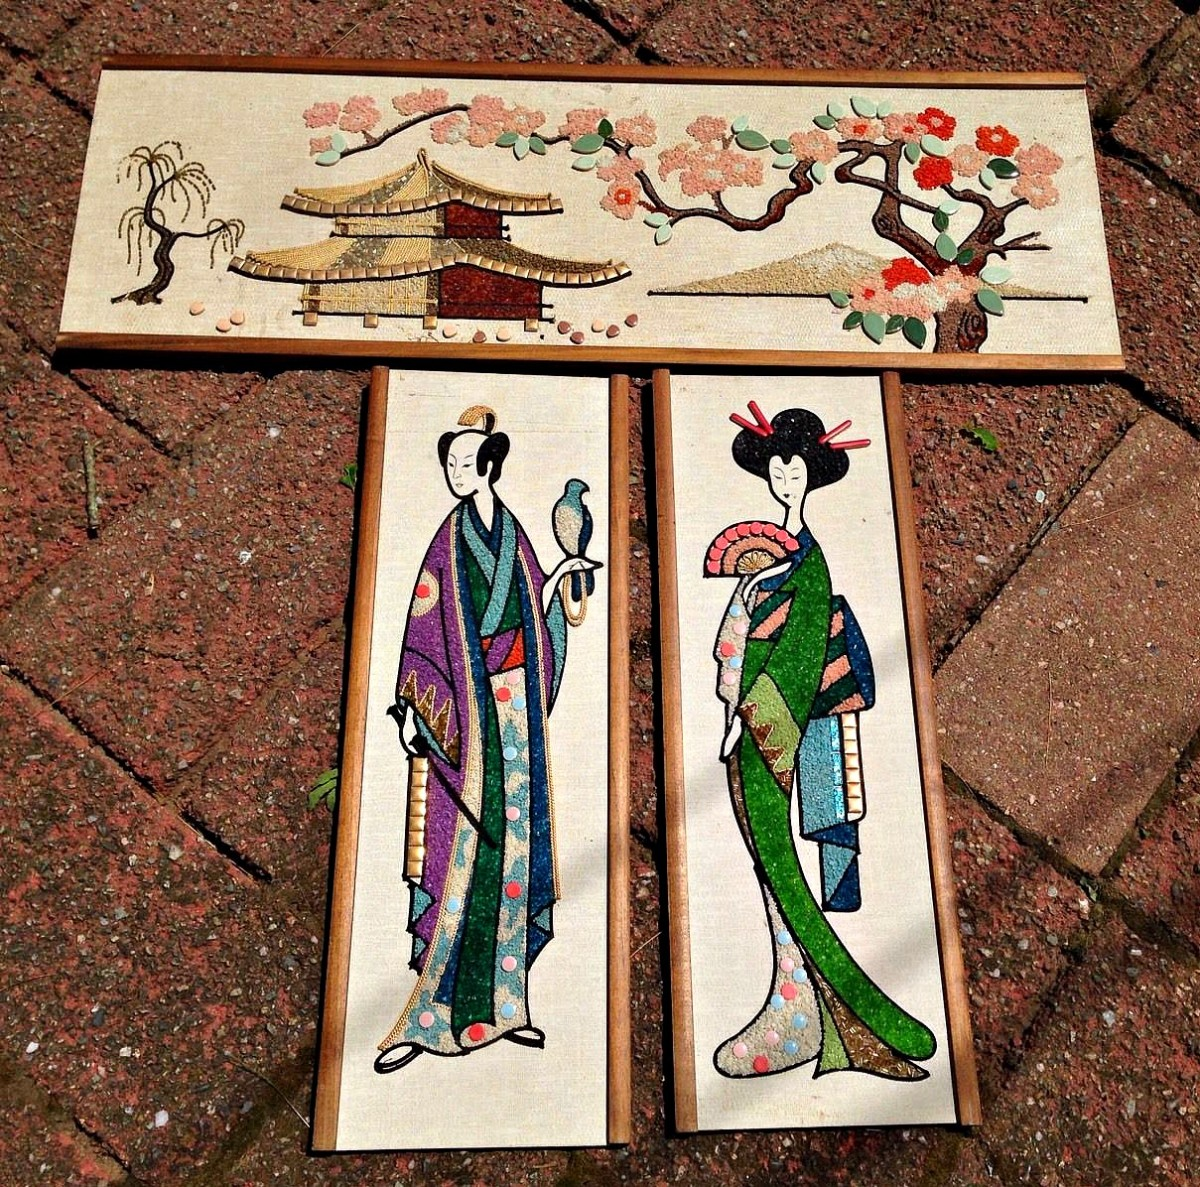 """Three-piece vintage Asian gravel art set, mid-century modern. The large one measures 36"""" x 12.5. The smaller one measures 24"""" x 8.5."""